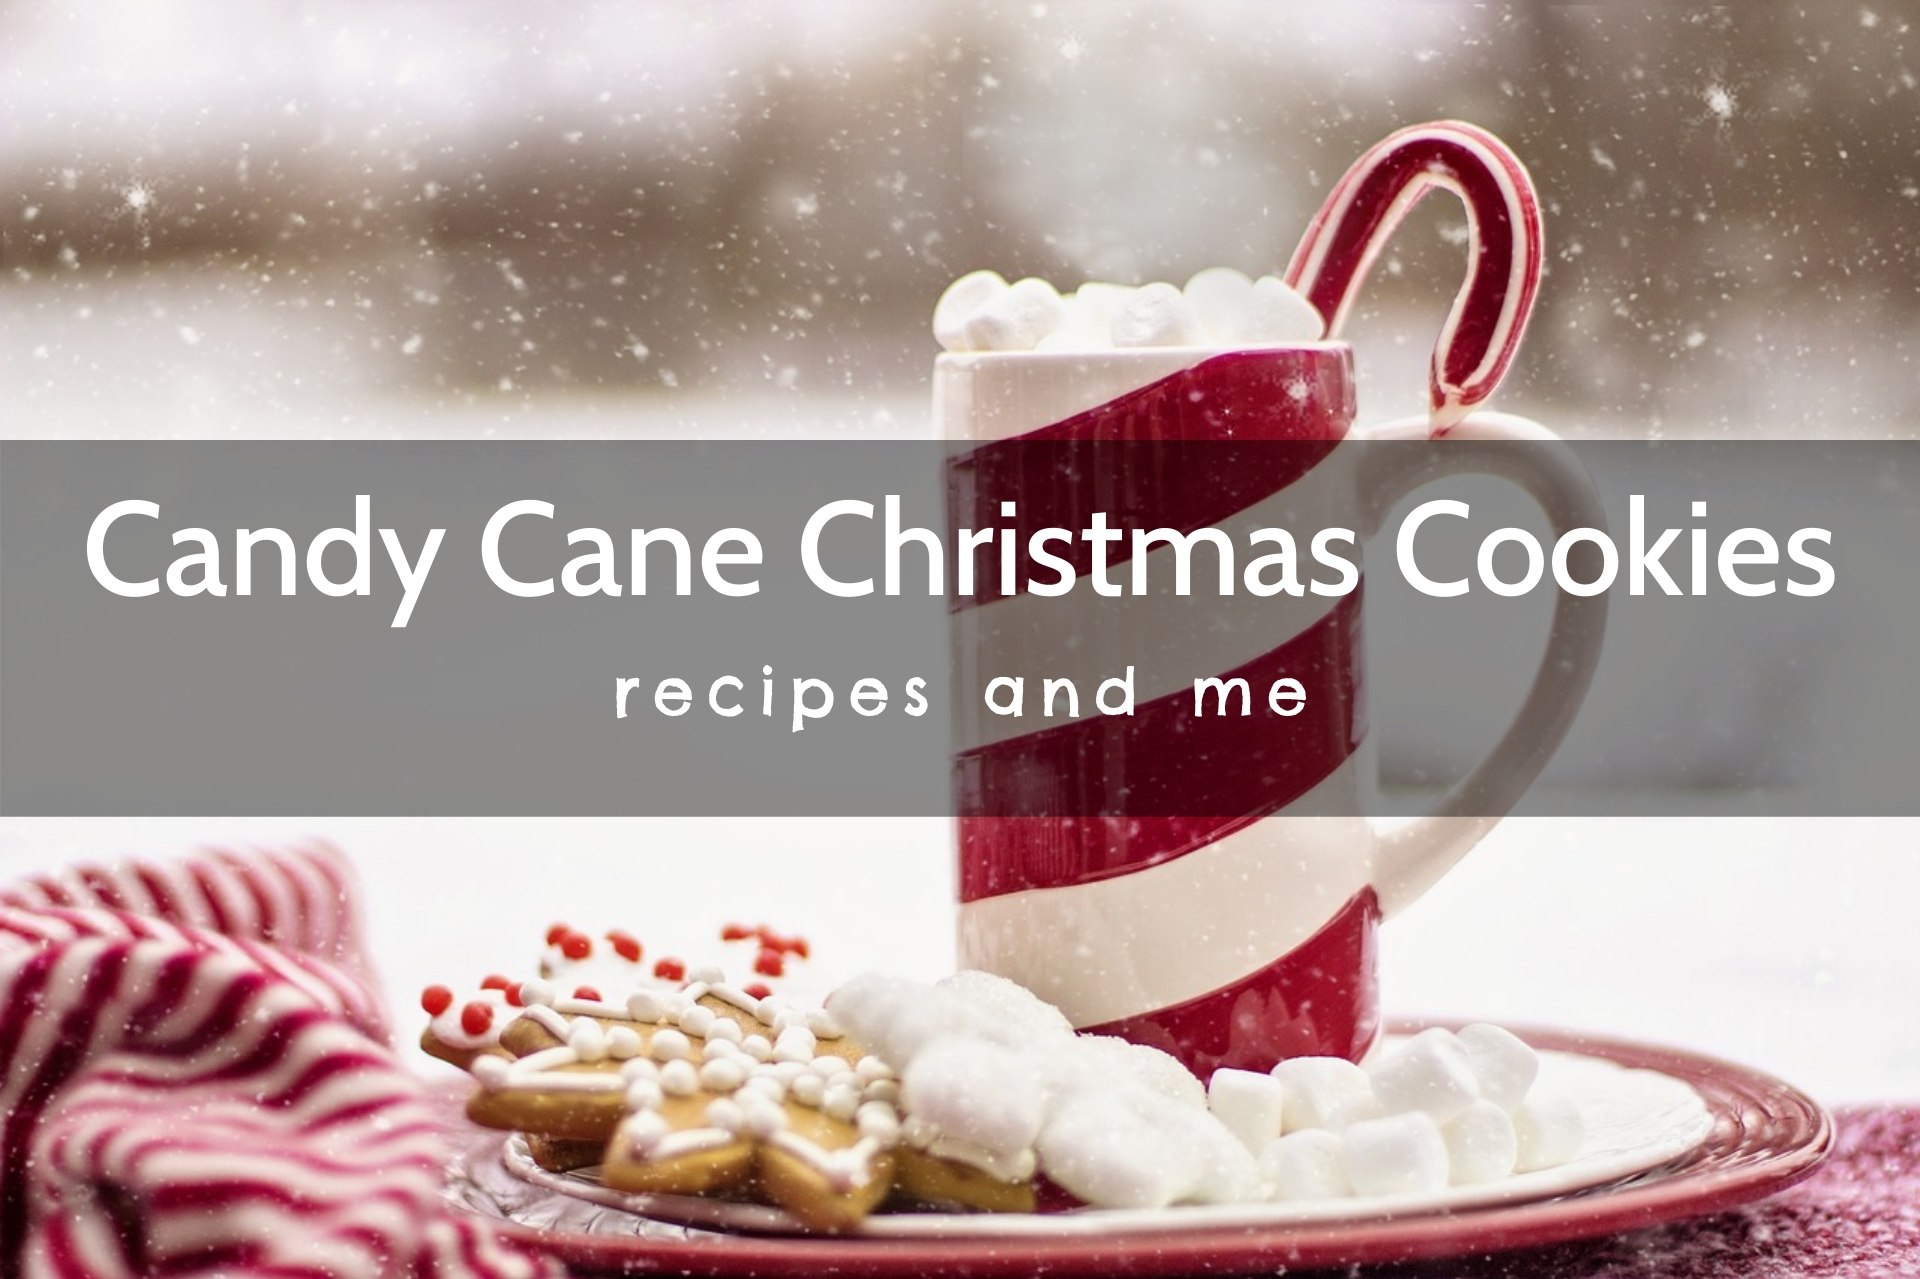 This candy cane Christmas cookie recipe is the perfect marriage of comfort and festive #decorated #kids #best #chocolate #nobake #andcandy #homemade #keto #DIY #CakeMix #inajar #desserts #appetizers #treats #breakfast #lunch # healthy #baking #decorations #snacks #traditions #cookies #glutenfree #crafts #art #recipes #sugar #cinnamon #cheesecake